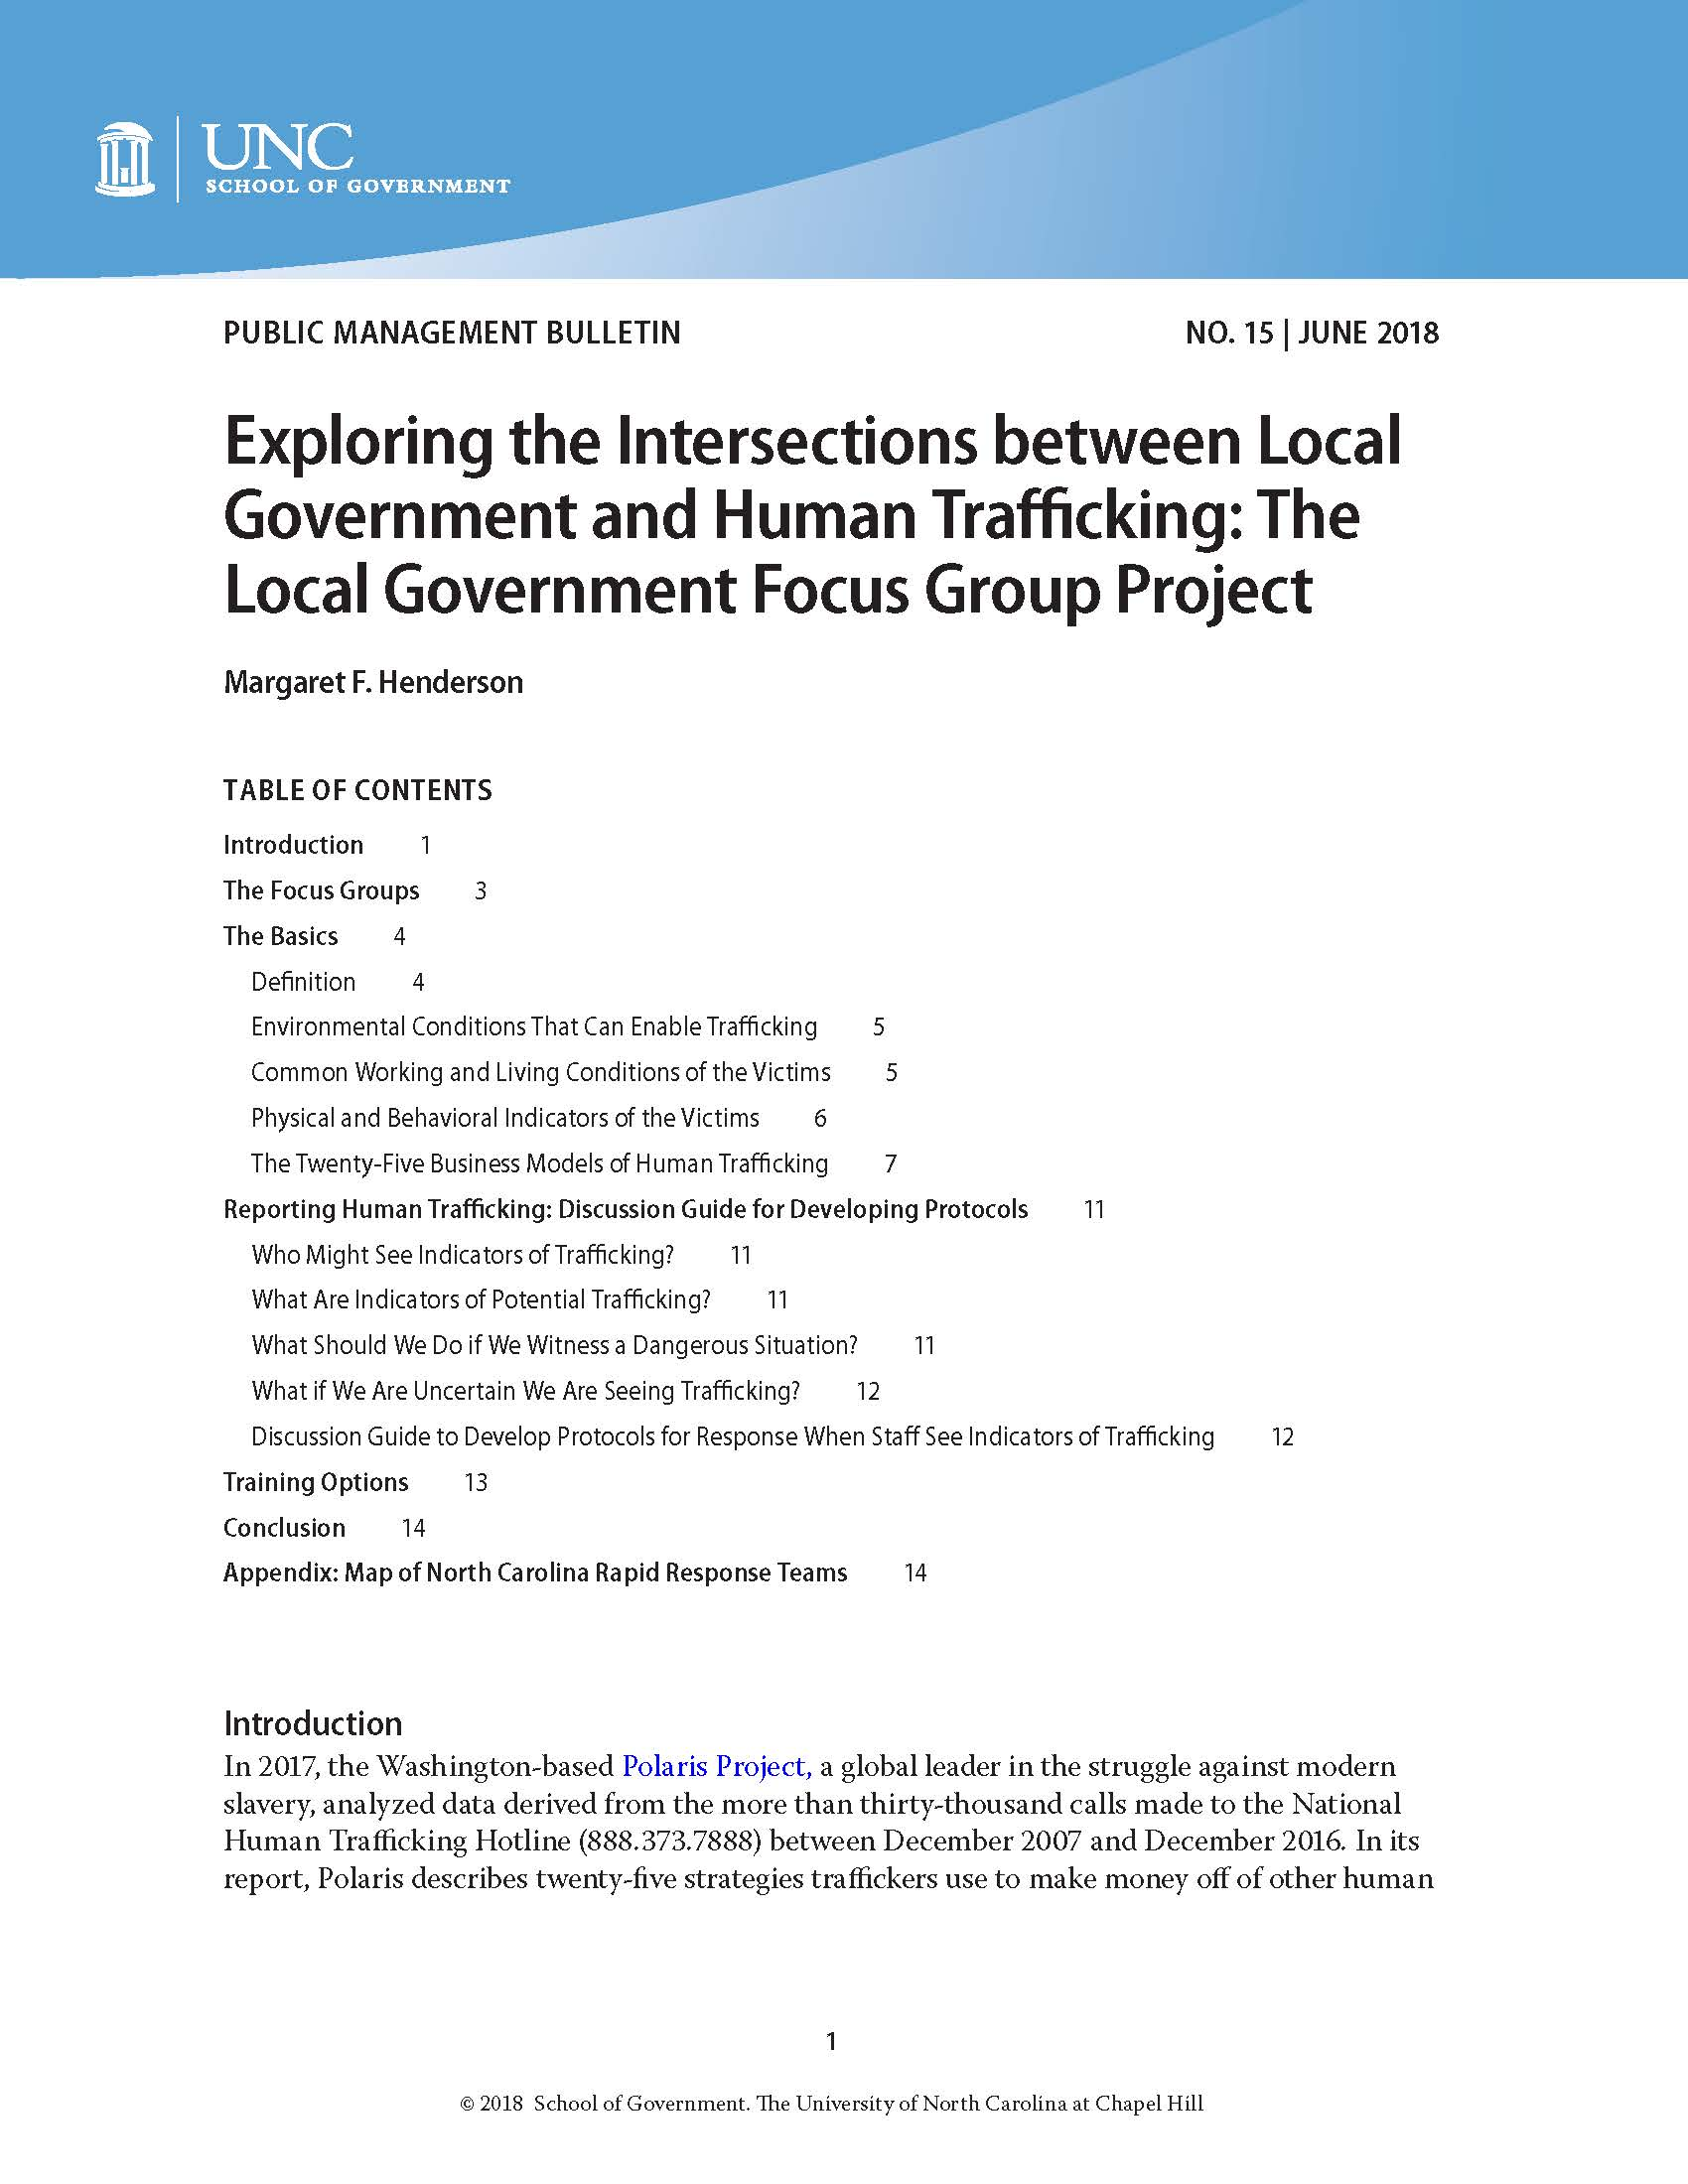 Cover image for Exploring the Intersections between Local Governments and Human Trafficking: The Local Government Focus Group Project